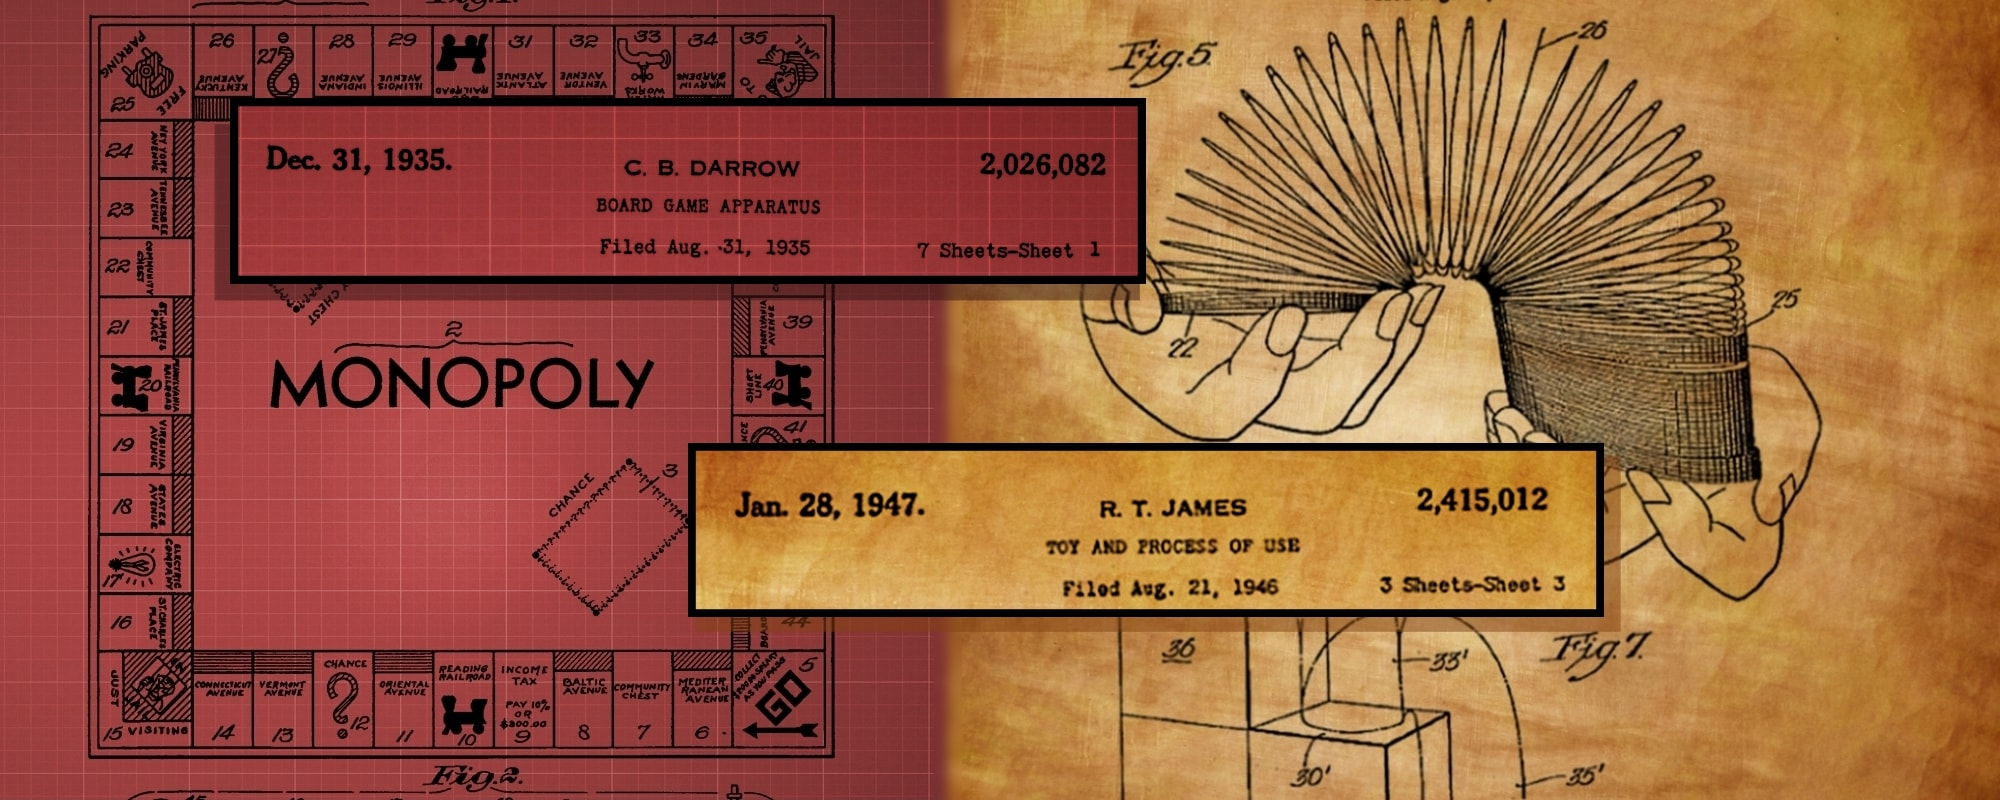 Sketches of historical patents for Monopoly game and Slinky toy